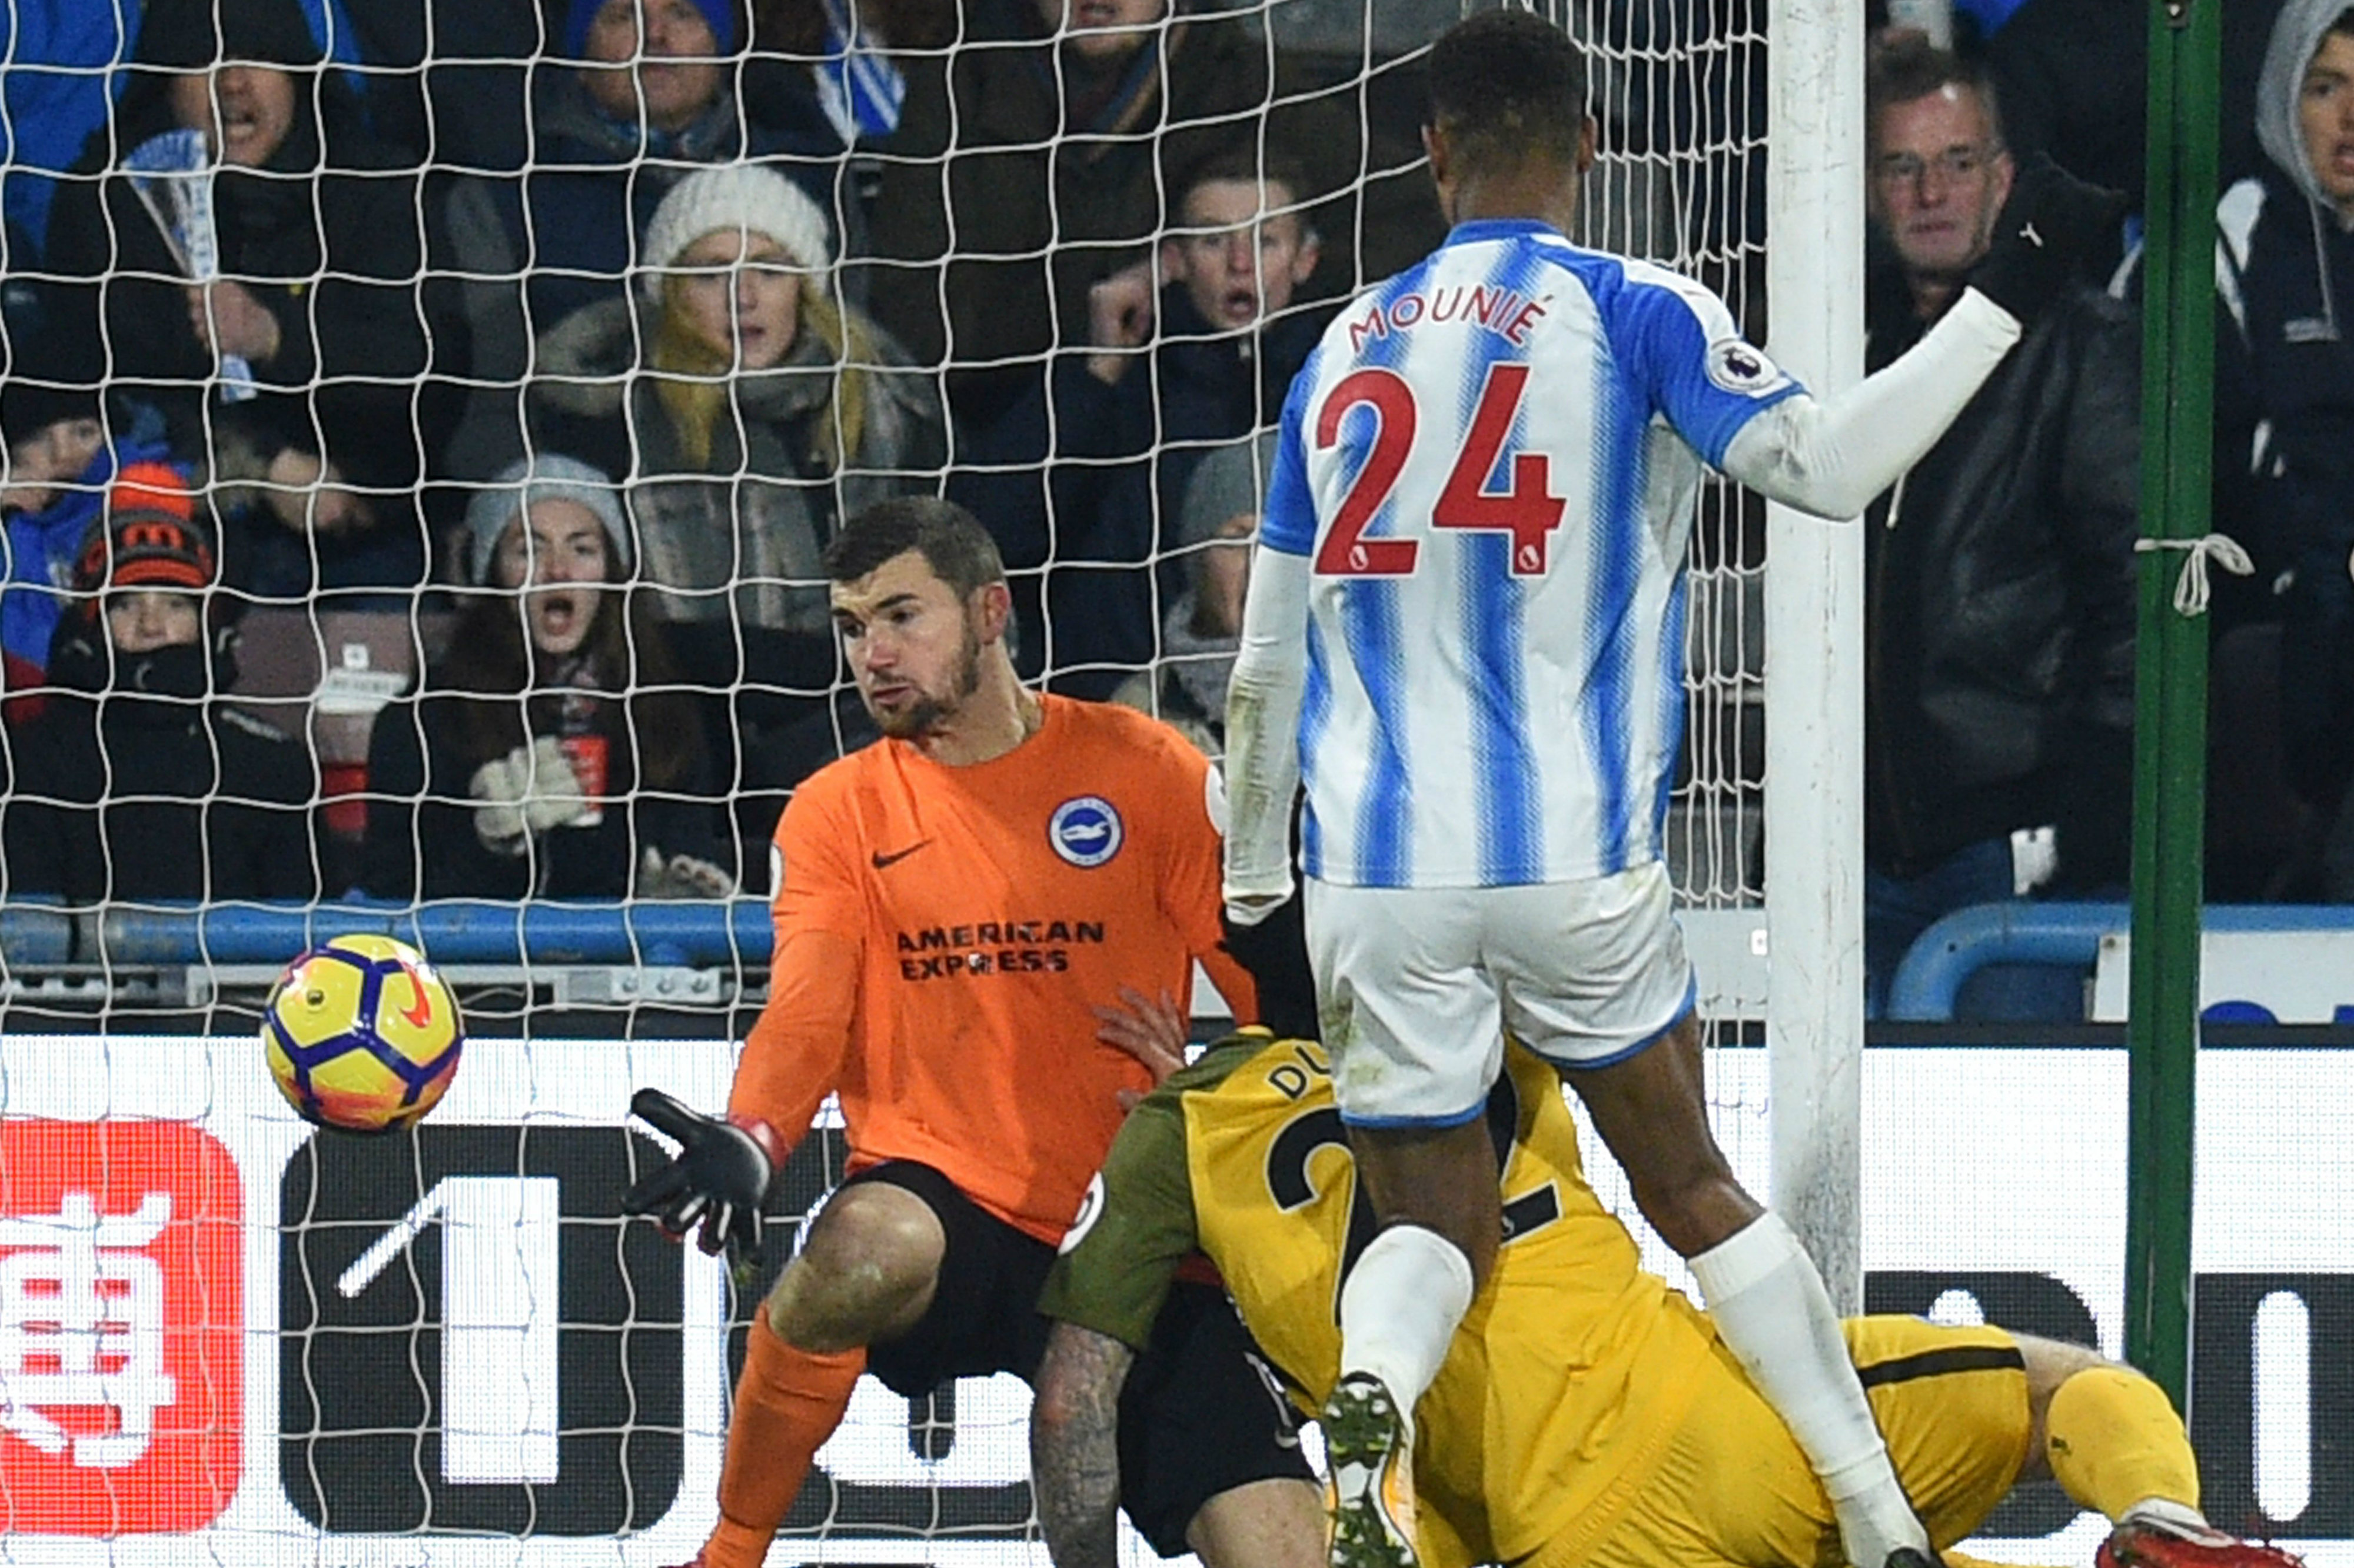 Mat Ryan could do nothing to prevent Brighton from falling to defeat against Huddersfield.